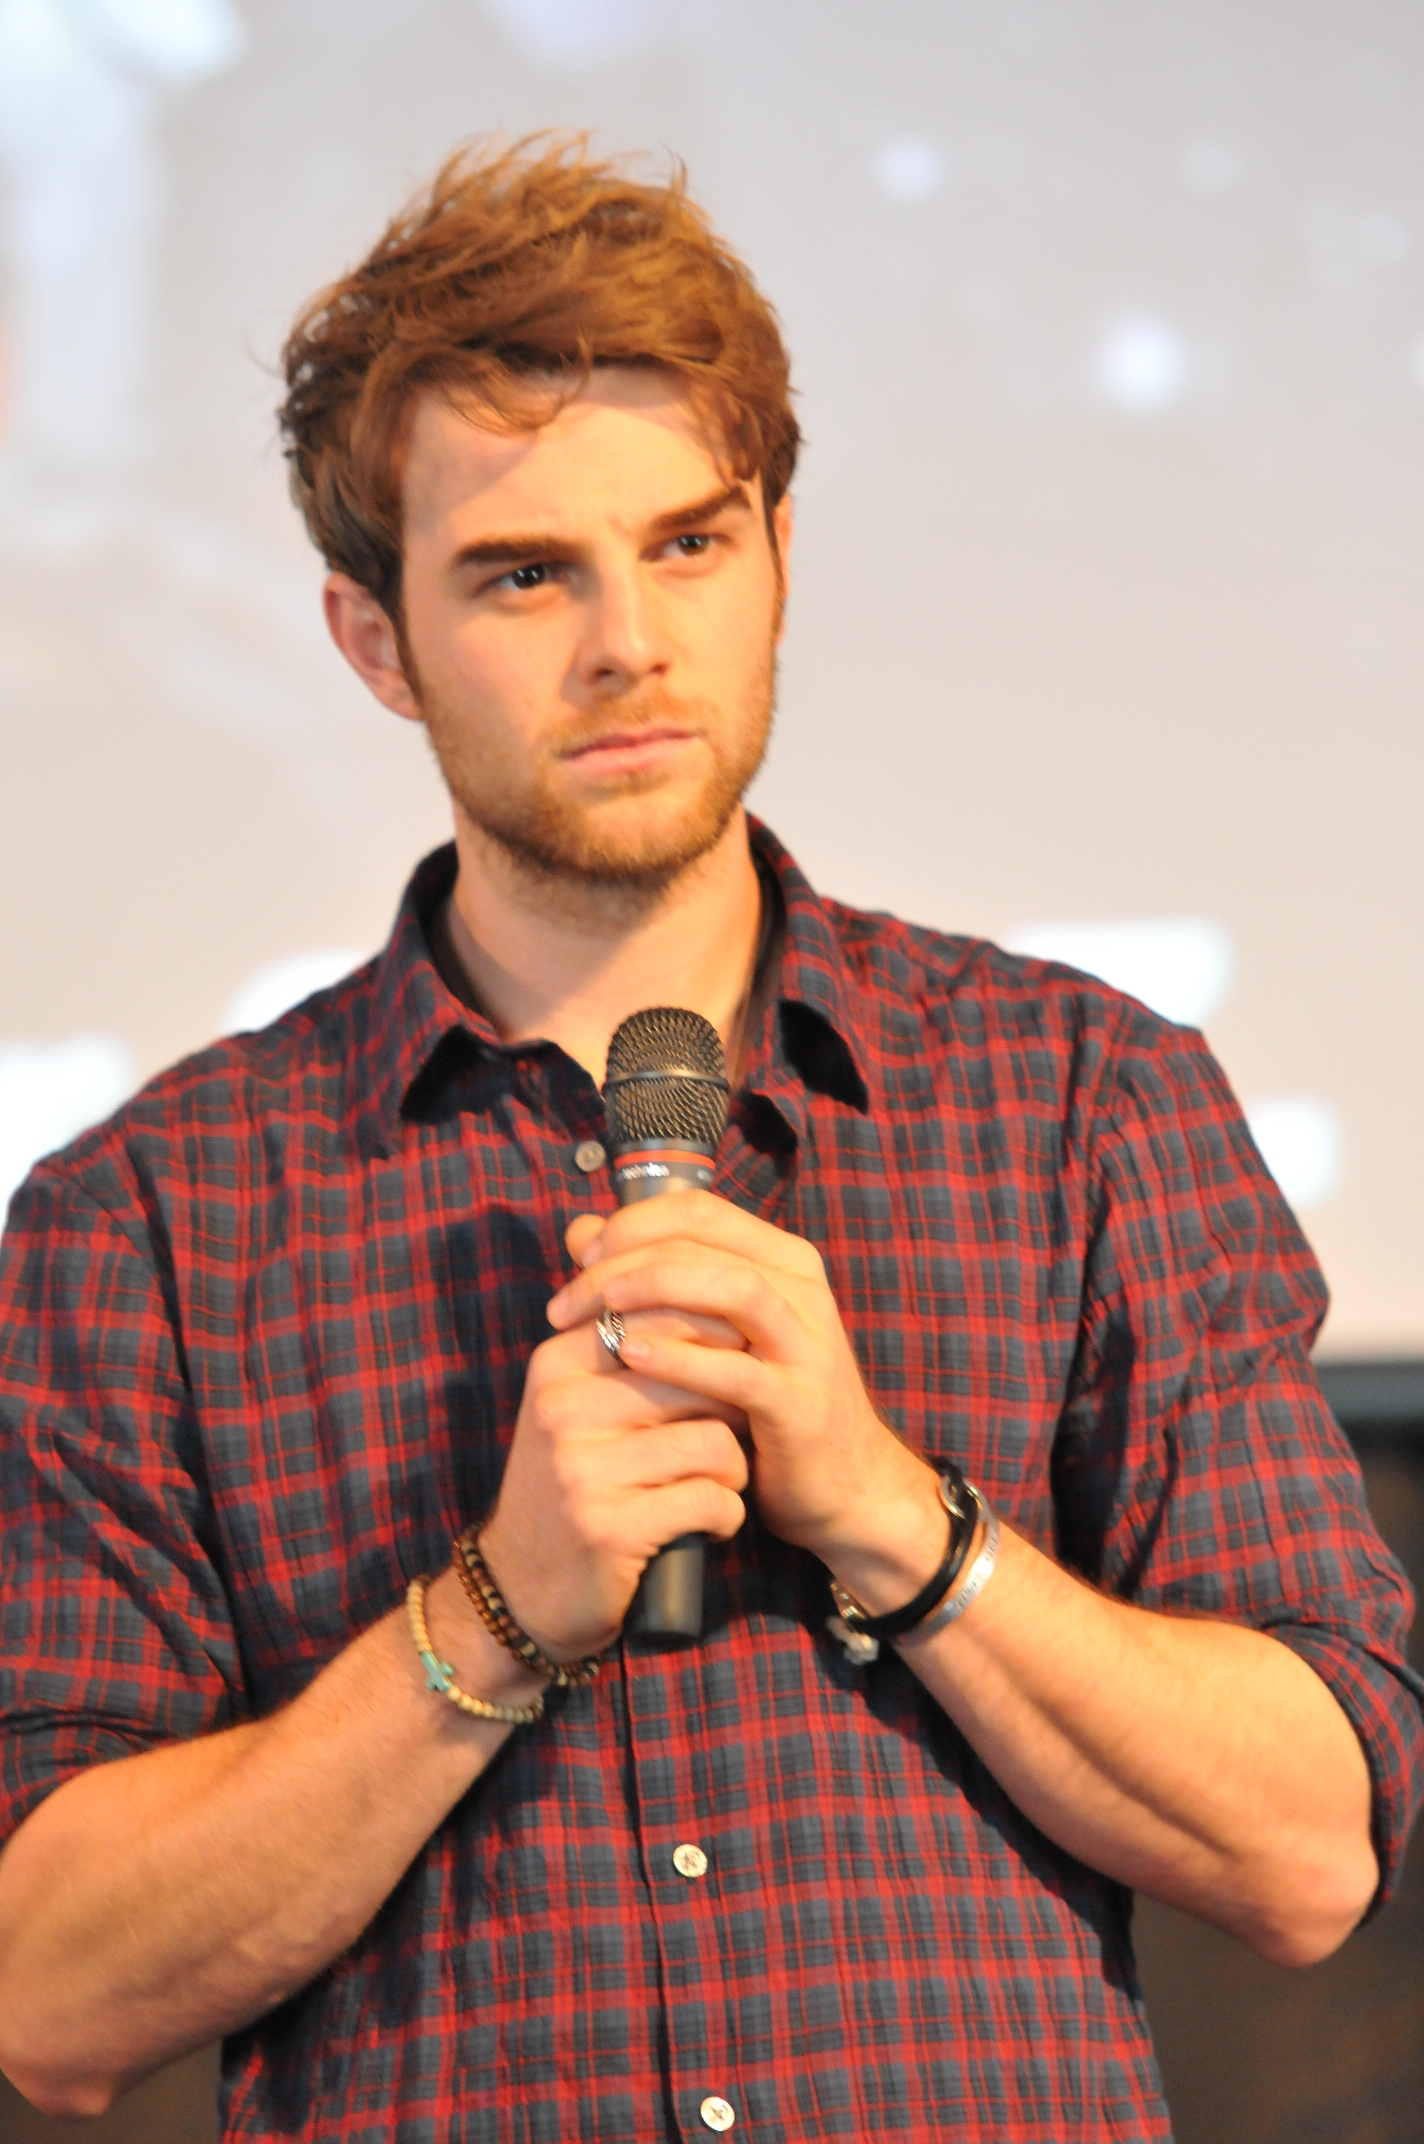 nathaniel buzolic and hayley stewartnathaniel buzolic vk, nathaniel buzolic gif, nathaniel buzolic личная жизнь, nathaniel buzolic gif hunt, nathaniel buzolic gallery, nathaniel buzolic png, nathaniel buzolic and nina dobrev, nathaniel buzolic photoshoot, nathaniel buzolic height, nathaniel buzolic the originals, nathaniel buzolic height and weight, nathaniel buzolic age, nathaniel buzolic instagram photos, nathaniel buzolic ruby rose, nathaniel buzolic site, nathaniel buzolic web, nathaniel buzolic imdb, nathaniel buzolic lorna lalinec, nathaniel buzolic news, nathaniel buzolic and hayley stewart